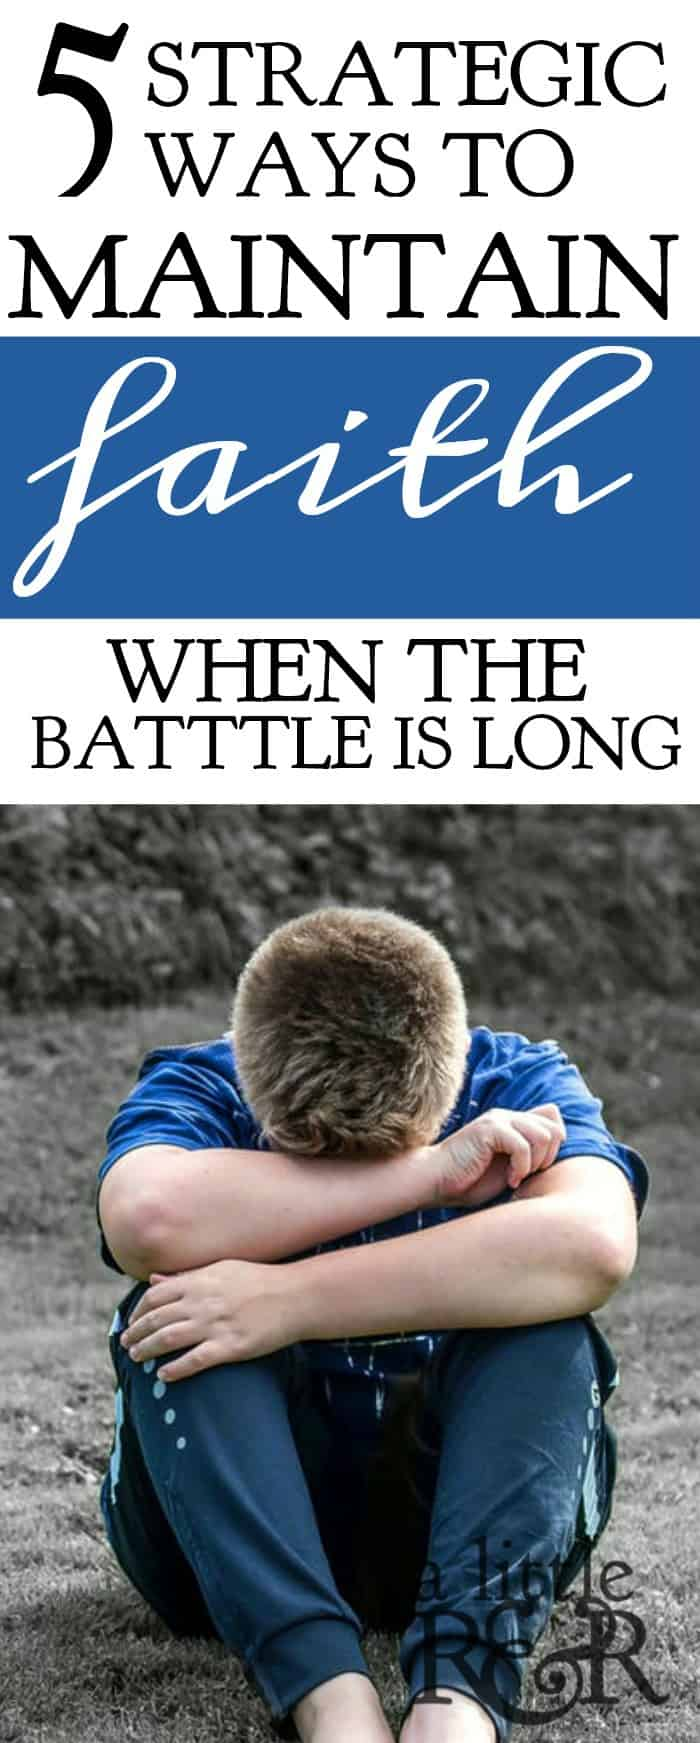 It is really hard to keep fighting when the battle is long and you grow tired and weary of fighting. Here are 5 things we learn from David's battle with Goliath that encourage us to maintain faith and joy in the battle.